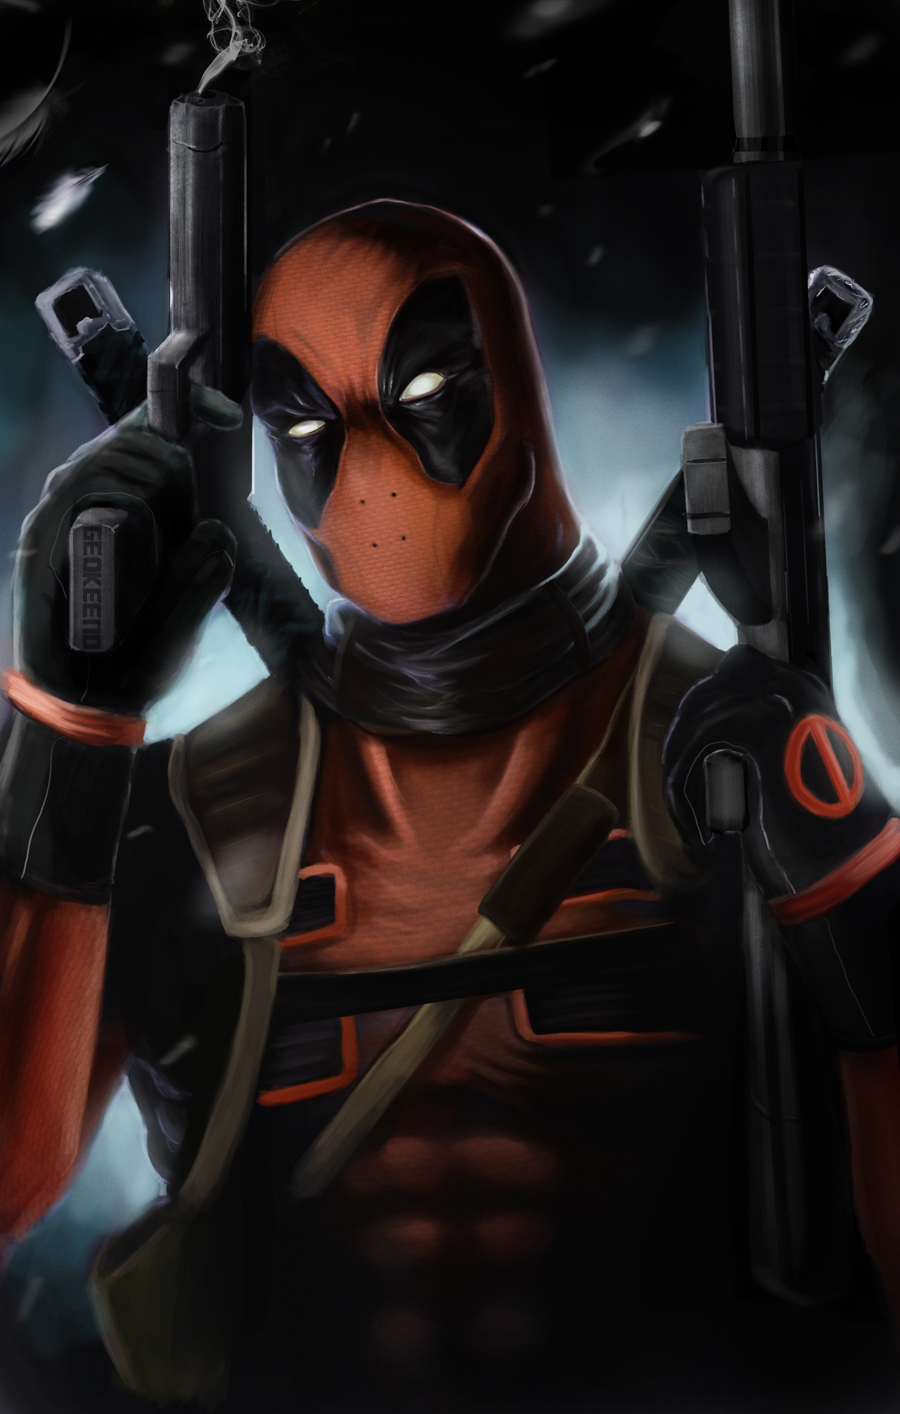 Image Result For Deathstroke Vs Deadpool